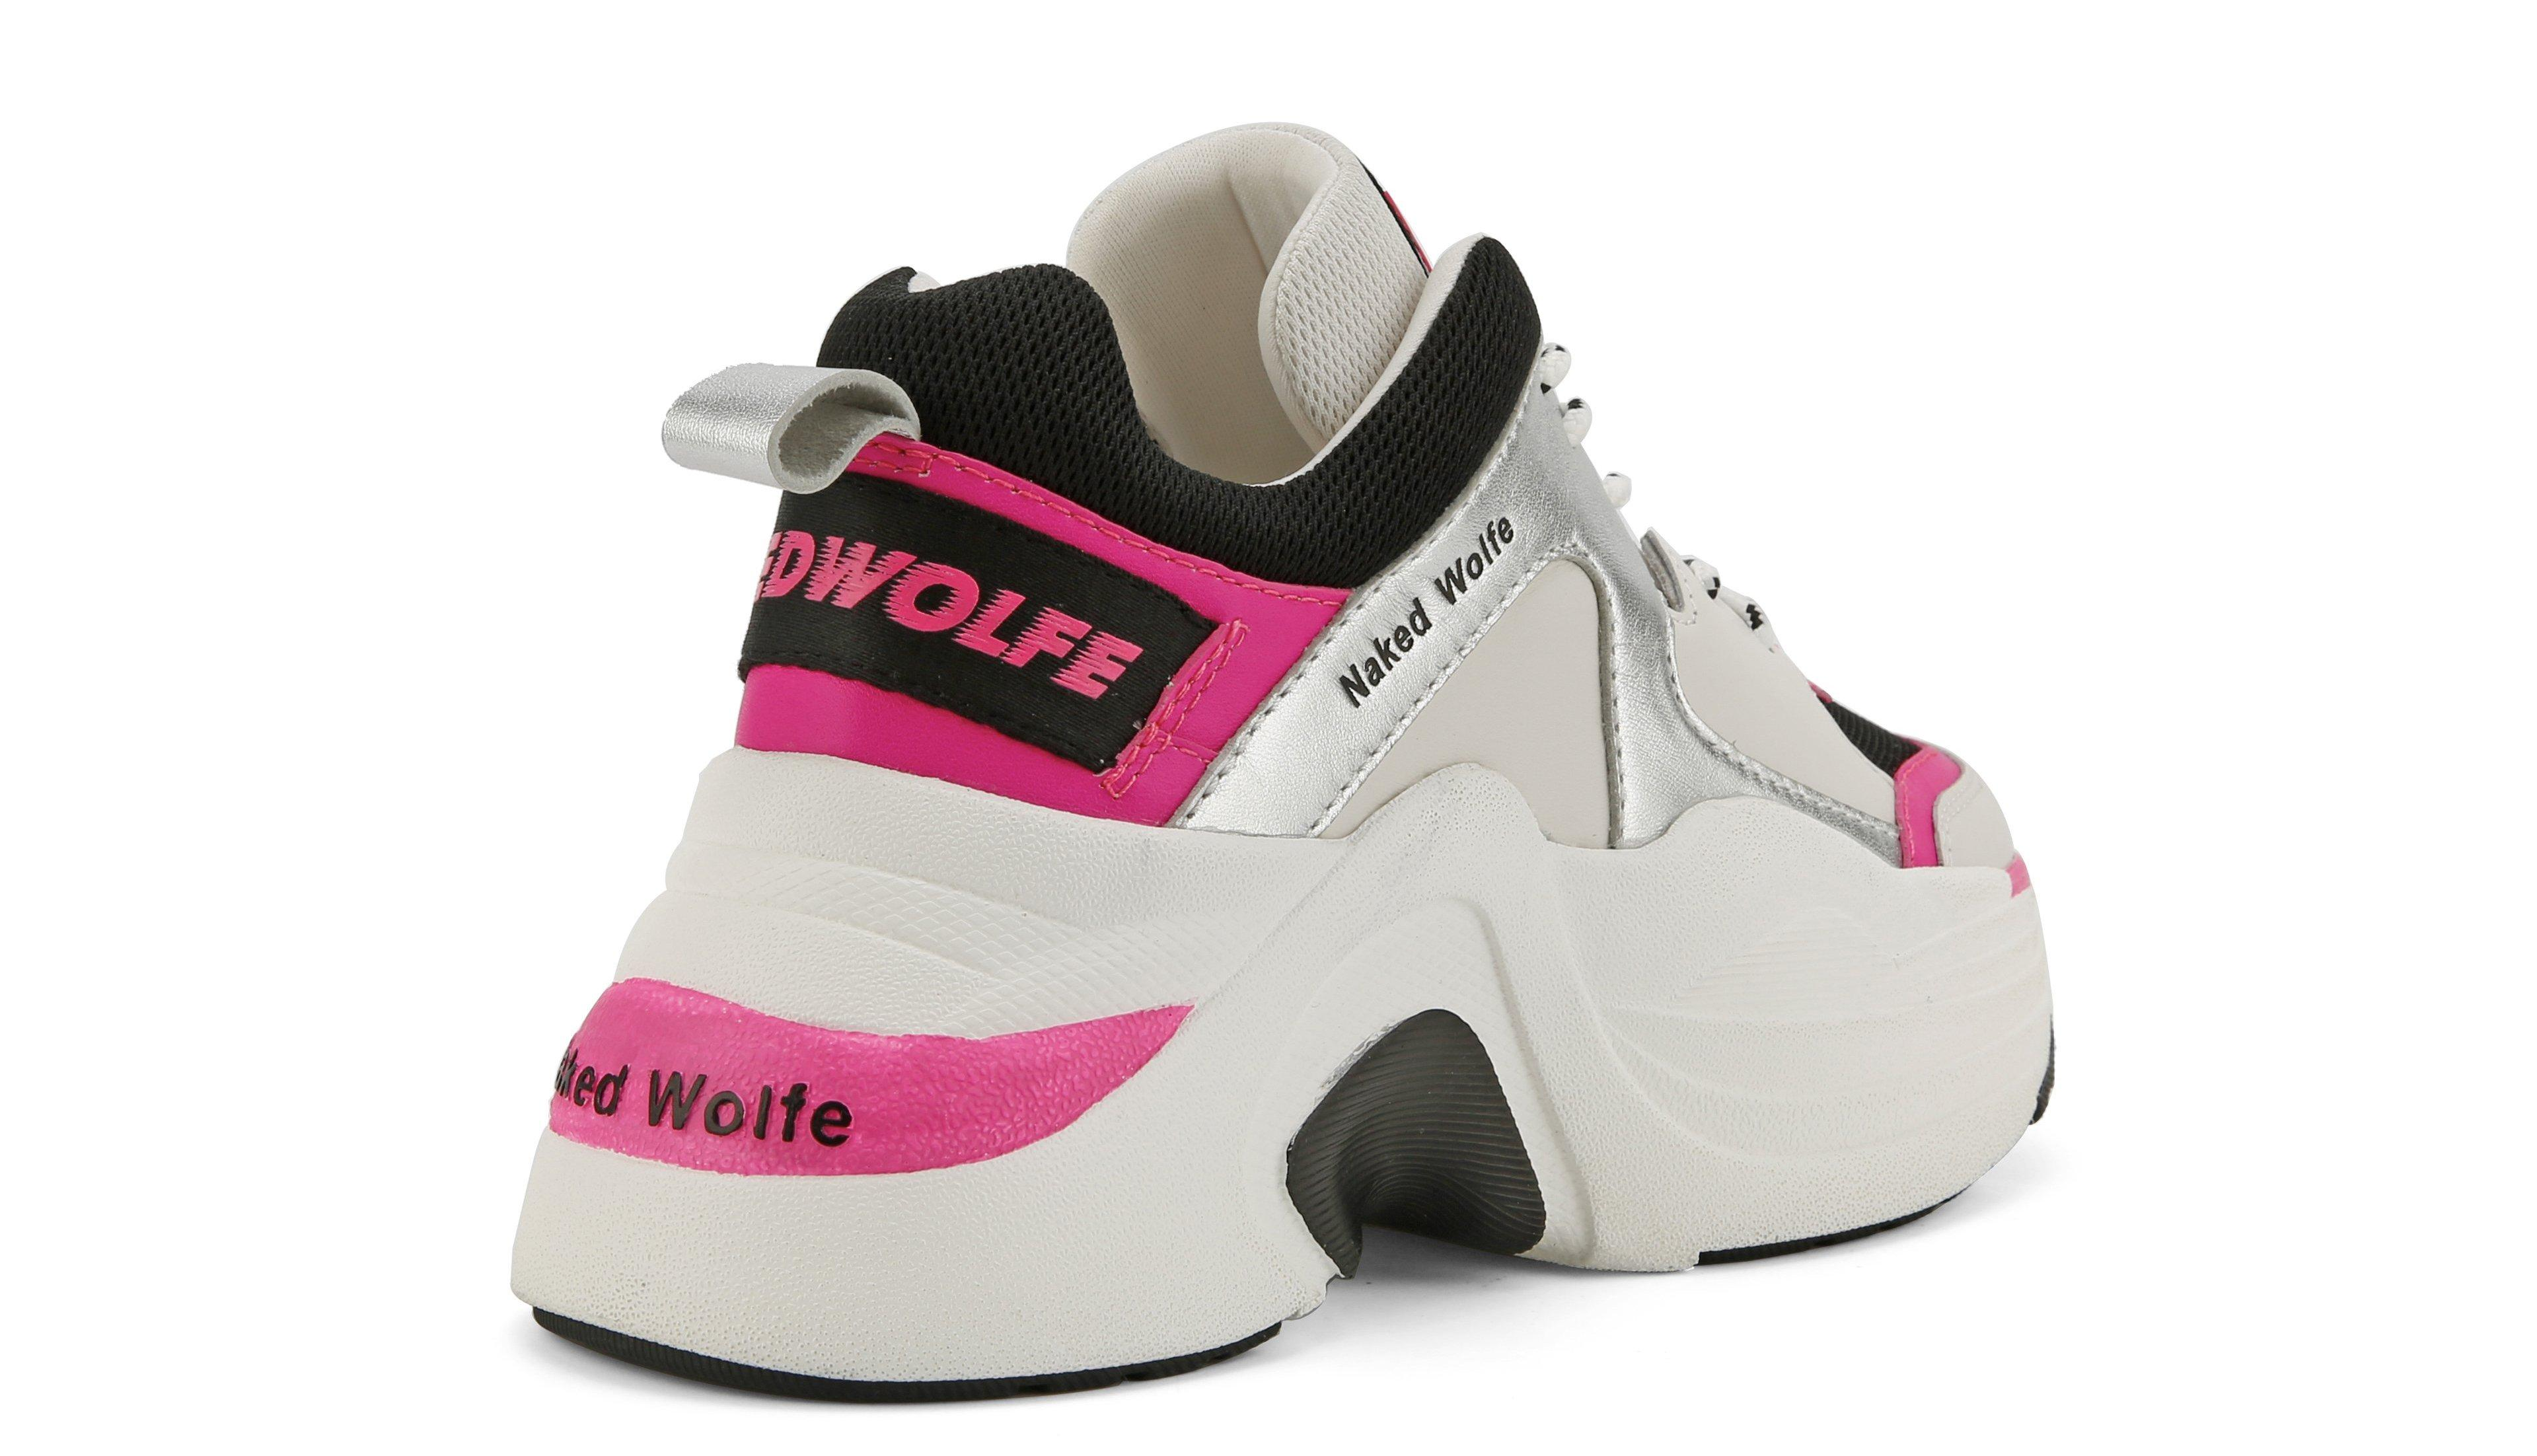 sneakers-naked-wolfe-donna-naked-wolfe-cod-nwstrack